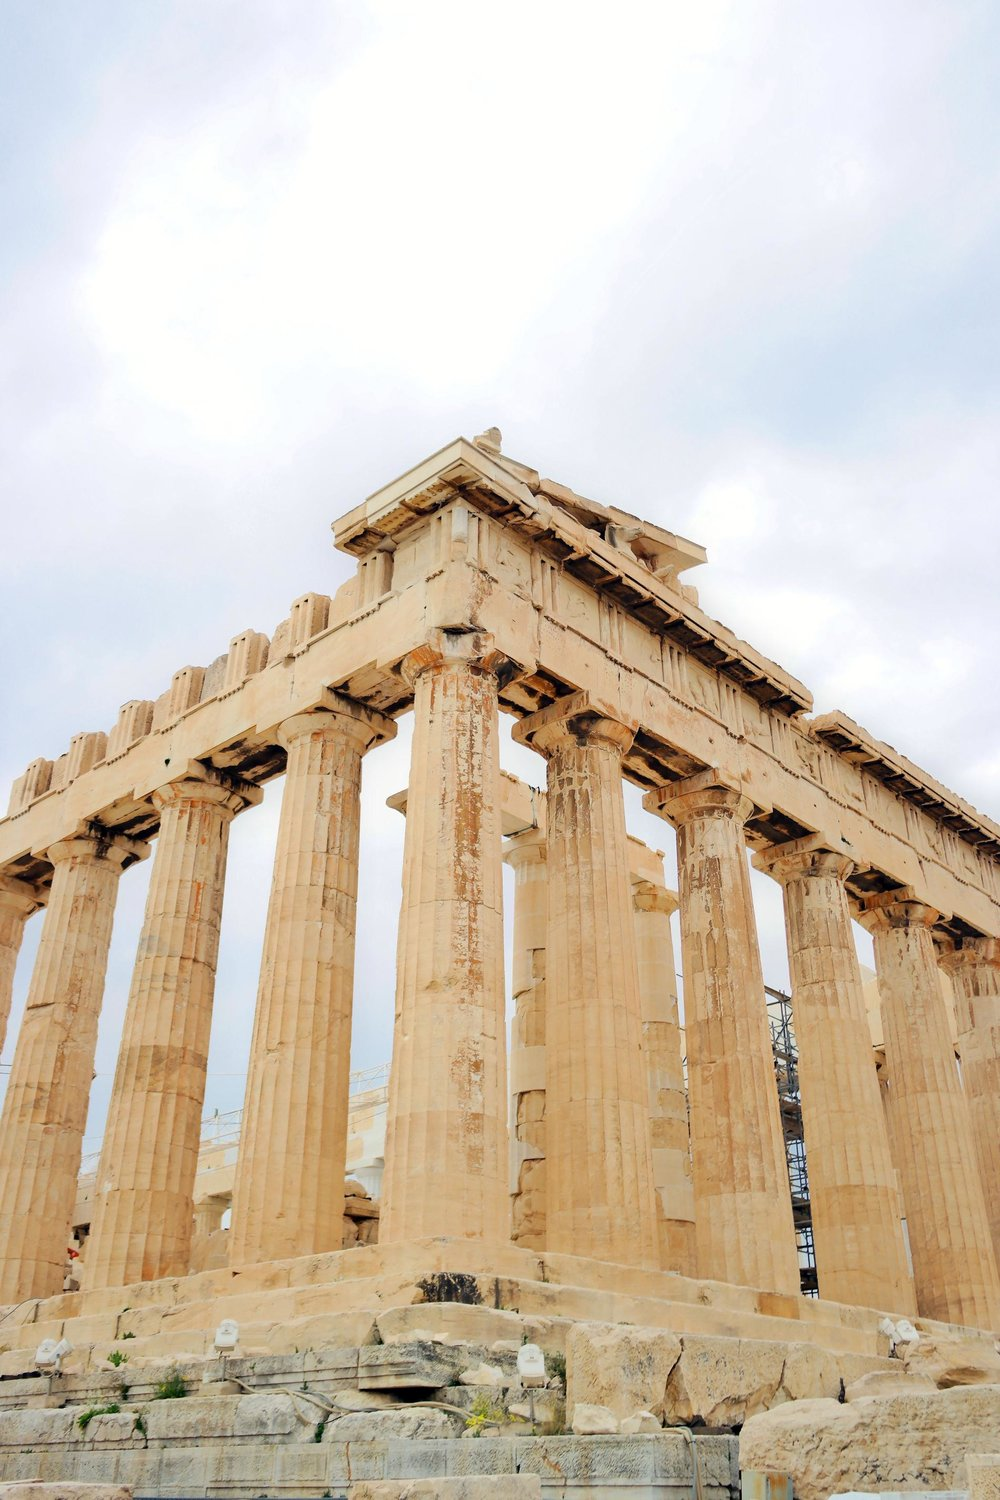 Acropolis has been voted the Leading Tourist Attraction for 2018 in World Travel Awards. Source: Truevoyagers